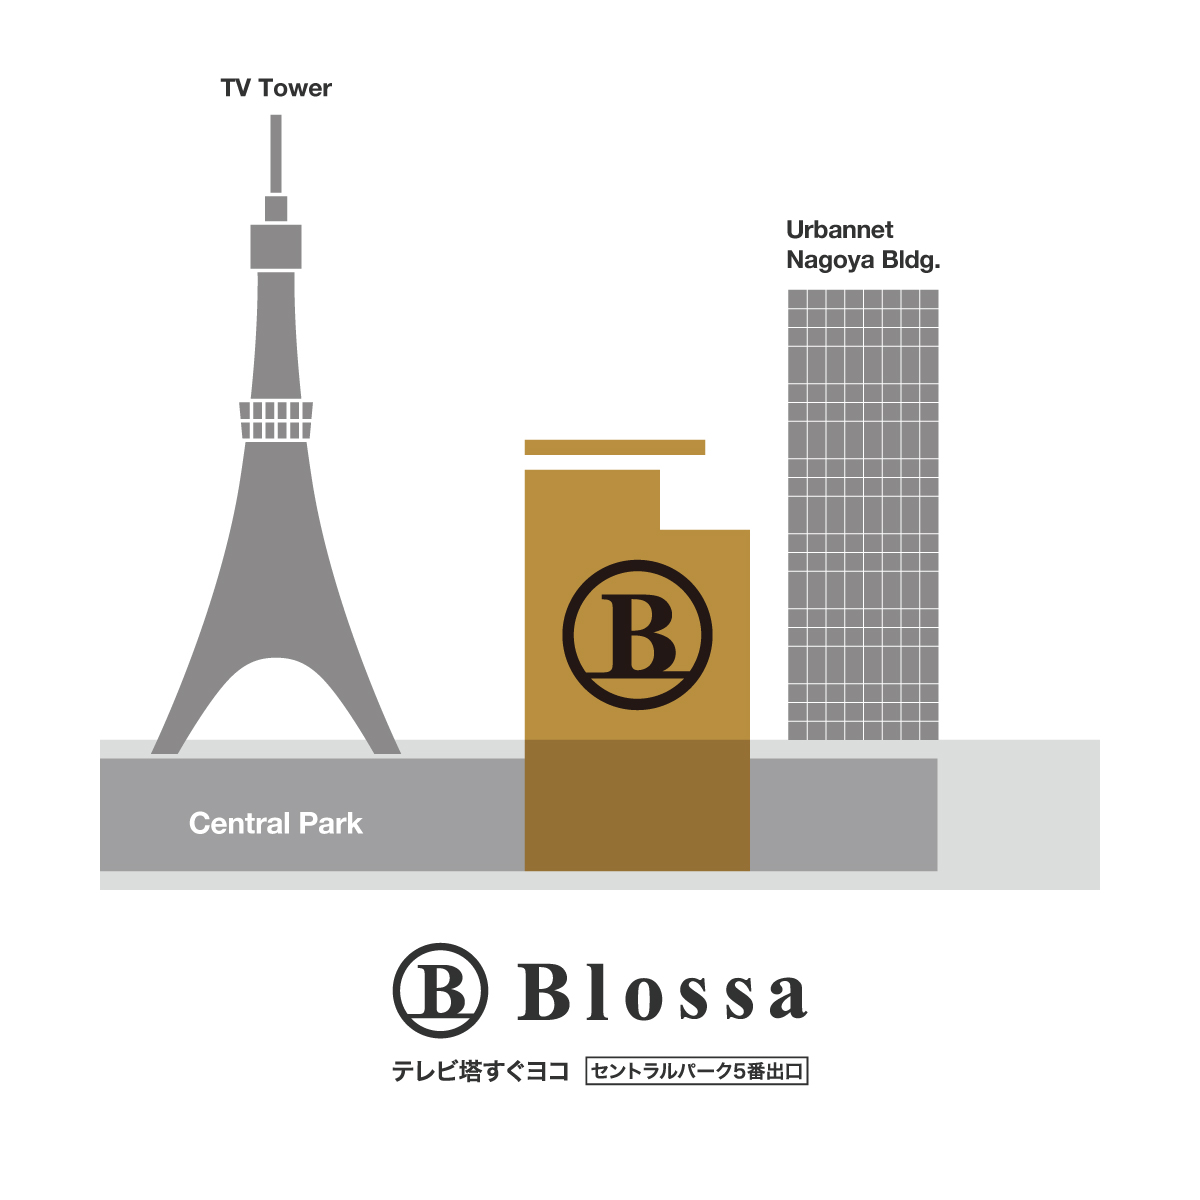 blossa info june 2019